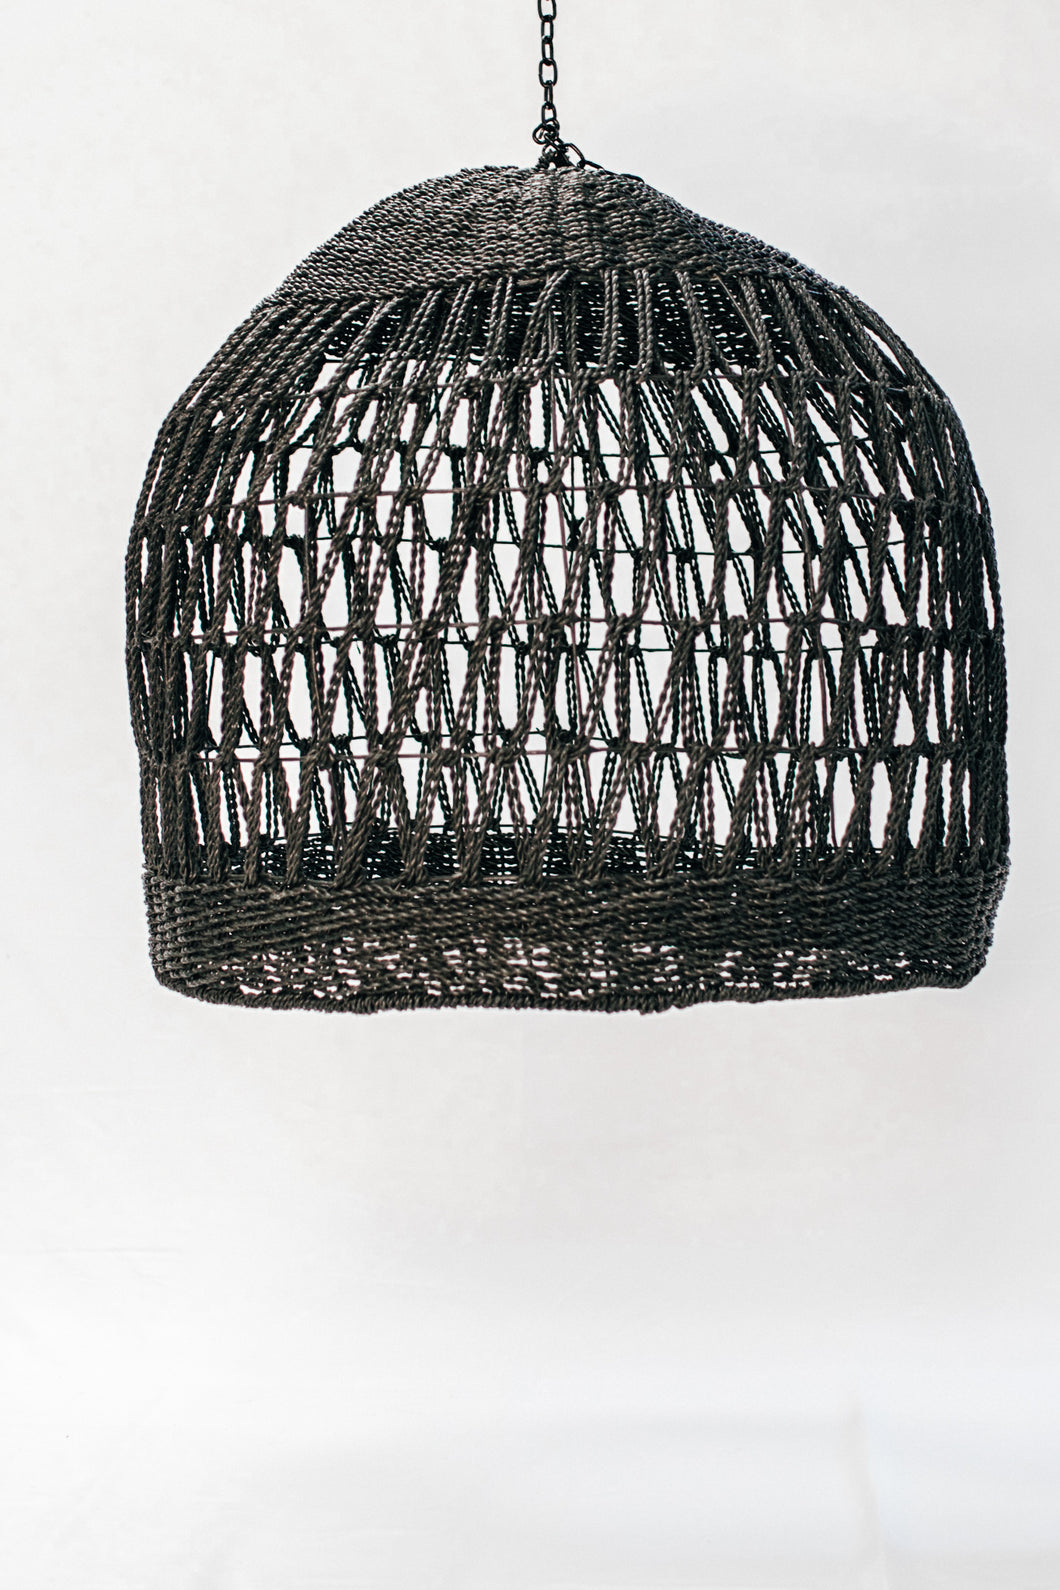 Seagrass Lampshade Black